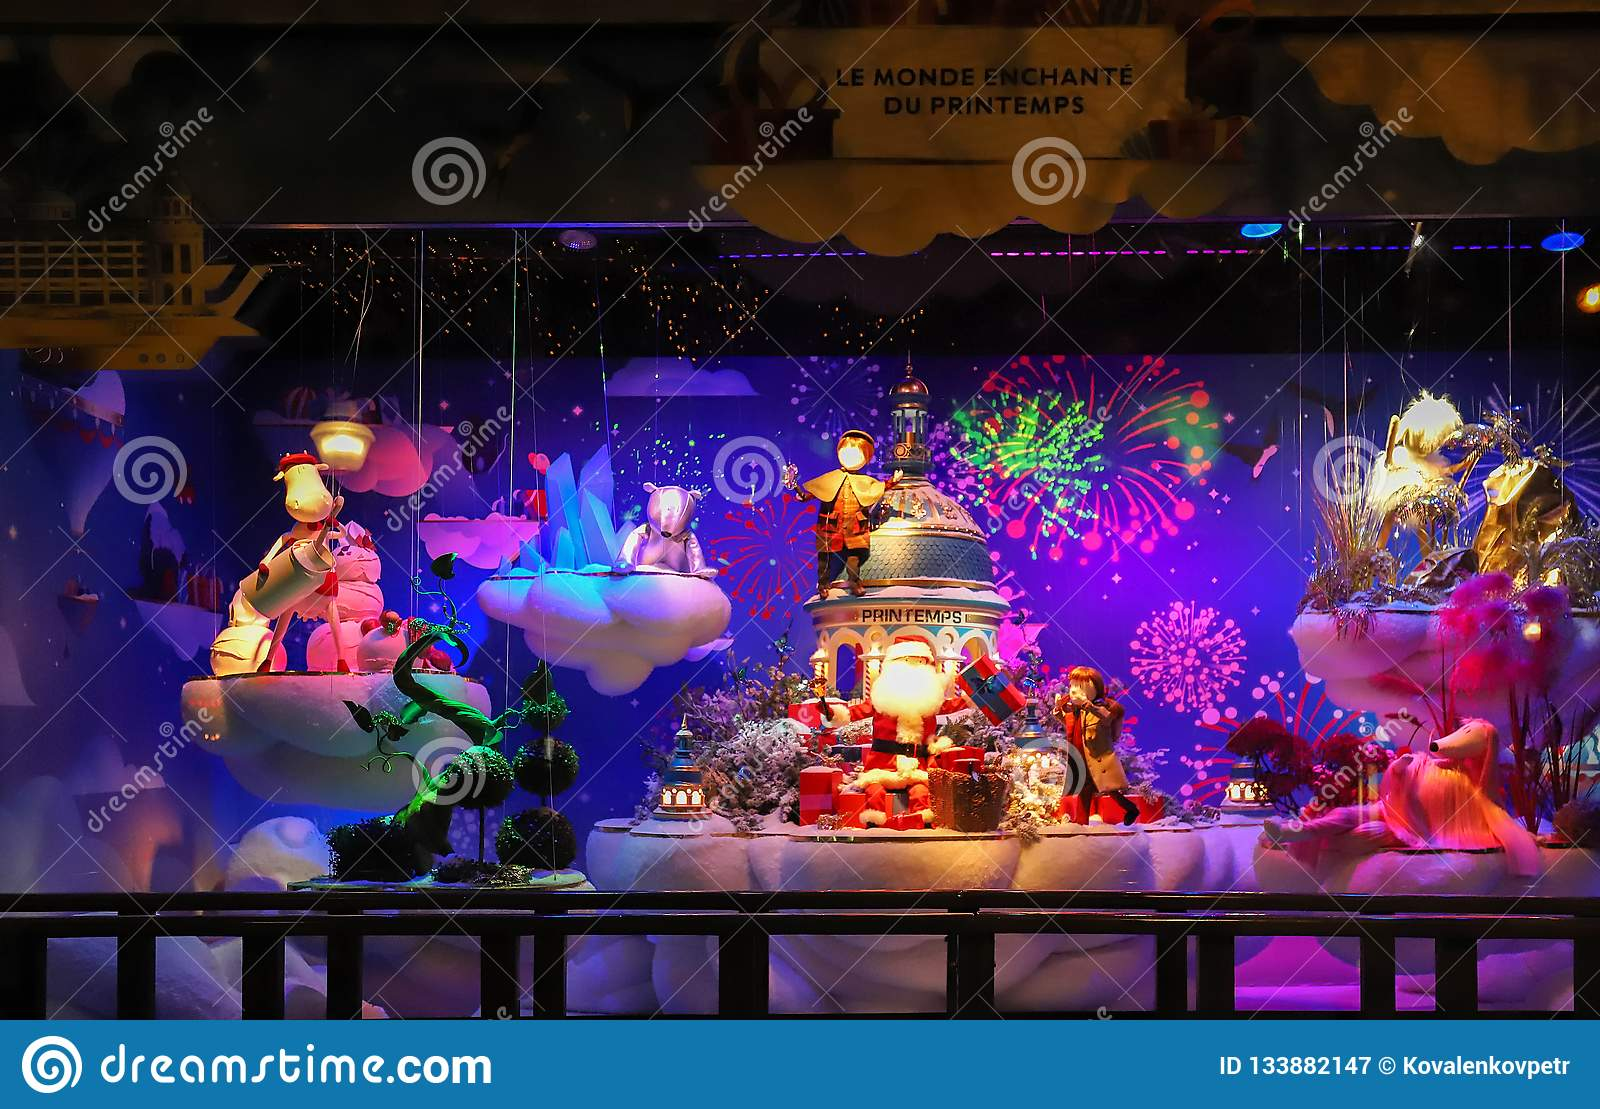 Paris, France-November 25, 2018   The Christmas showcase in Printemps  shopping center on boulevard Haussmann in Paris, France.The inscription in  French ... a459c8670dbb